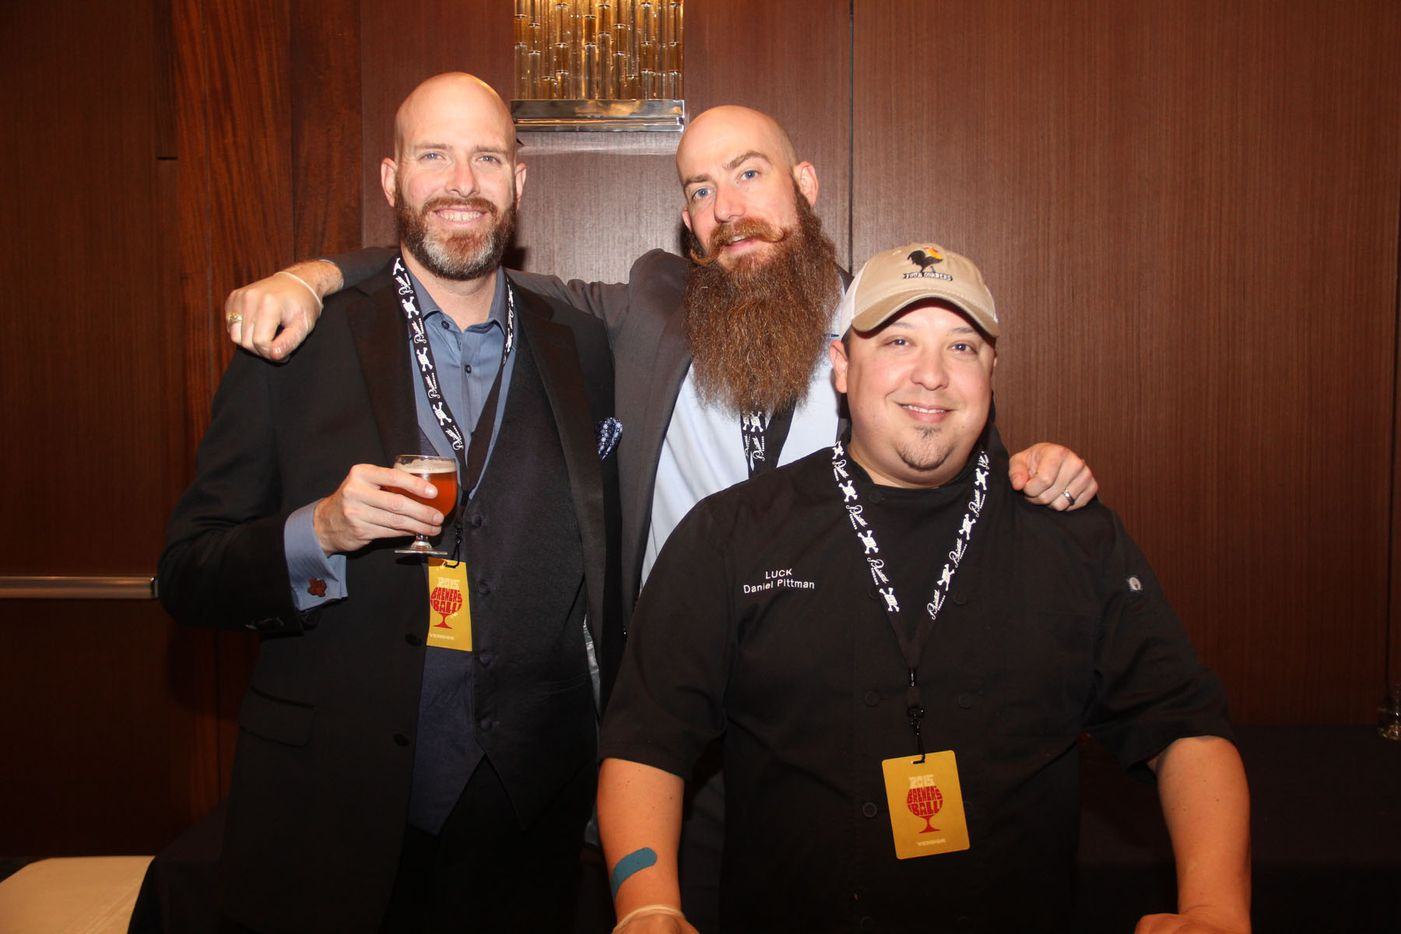 NTX Beer Week held its Second Annual Brewers Ball at the Renaissance Dallas Hotel on November 13, 2015. Ned Steel, Jeff Dietzman and Daniel Pittman of Luck.